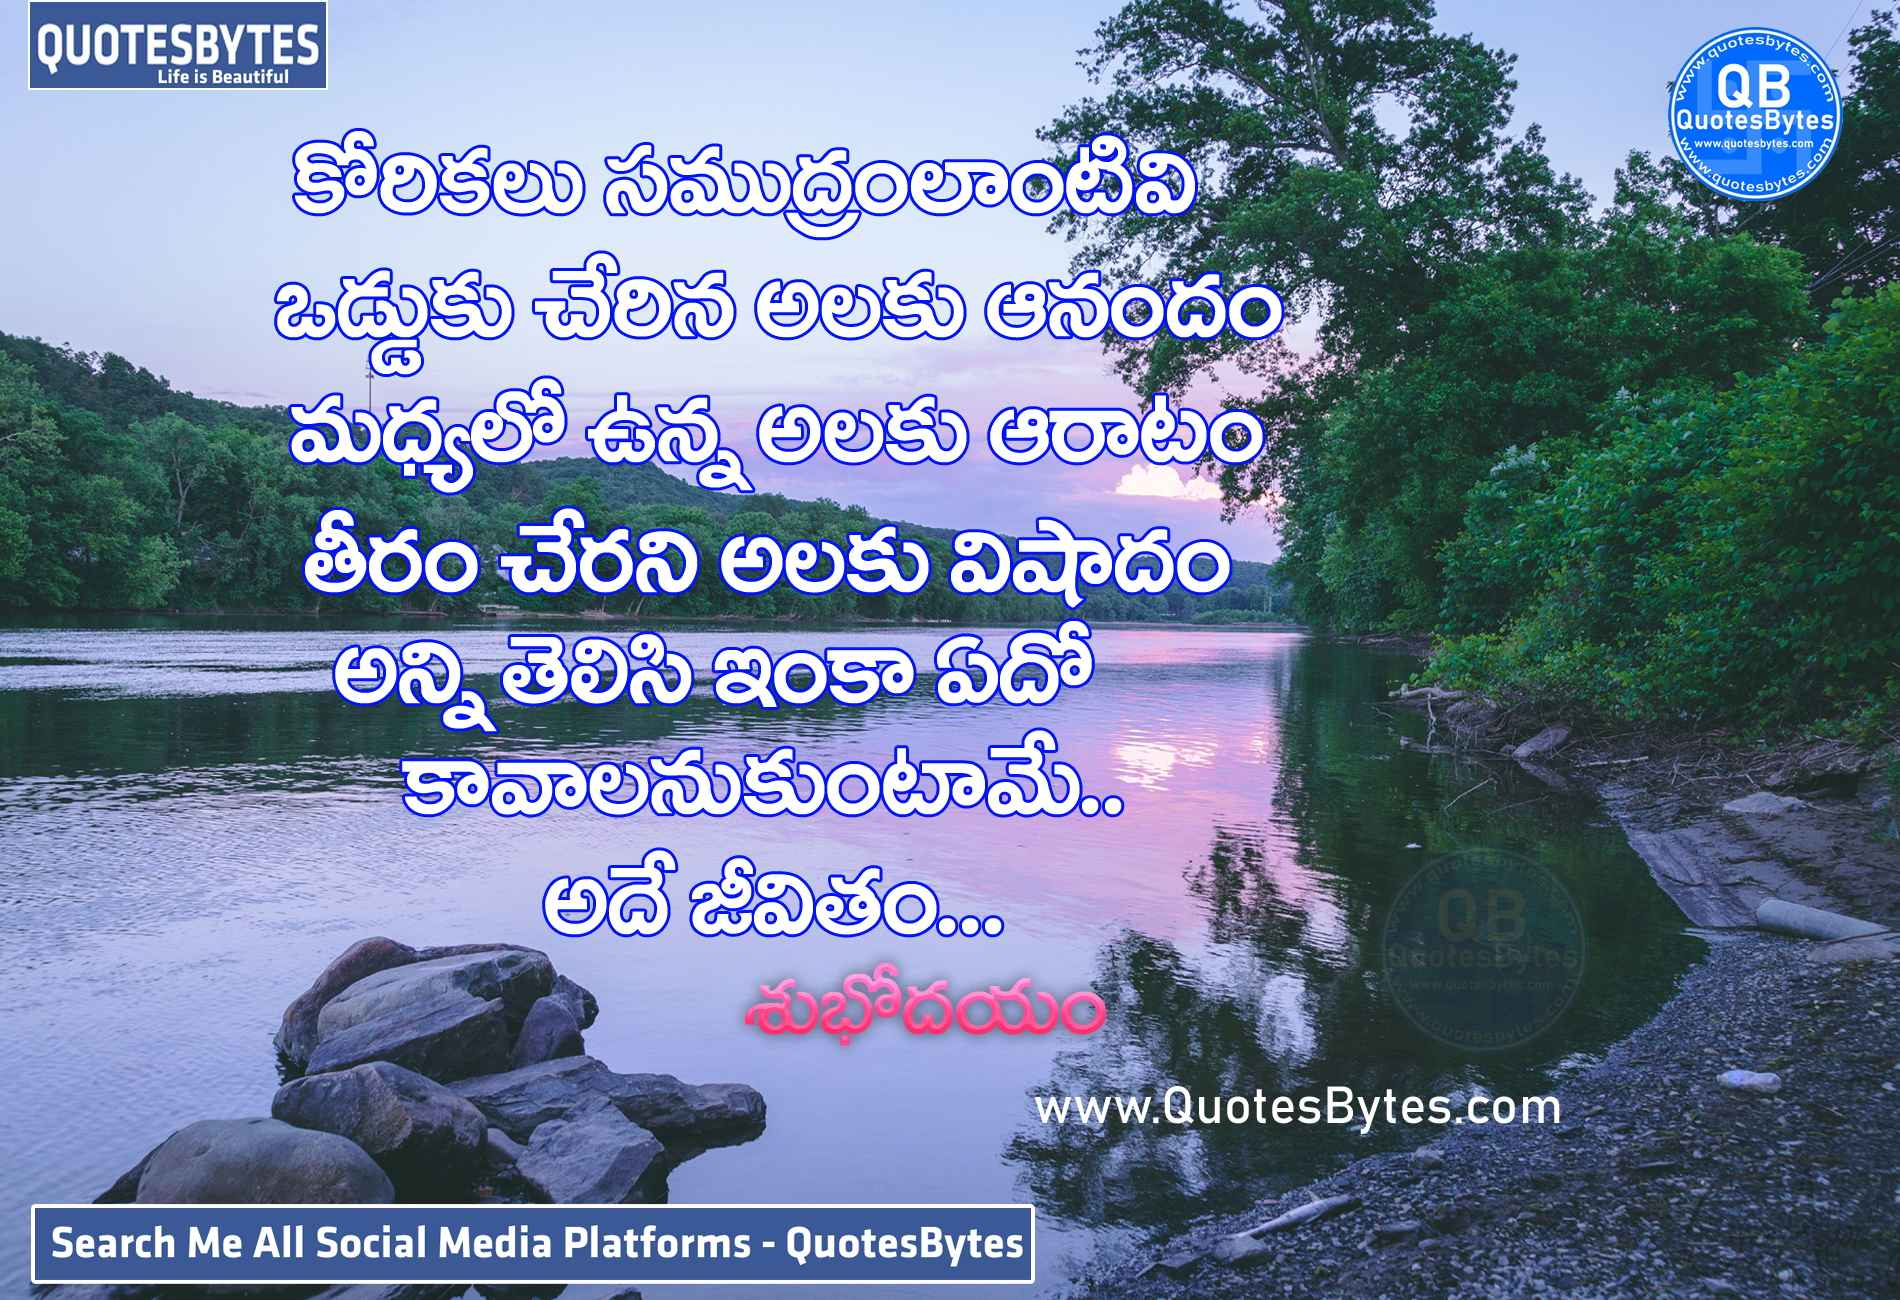 good morning images in telugu-good morning quotes with images telugu